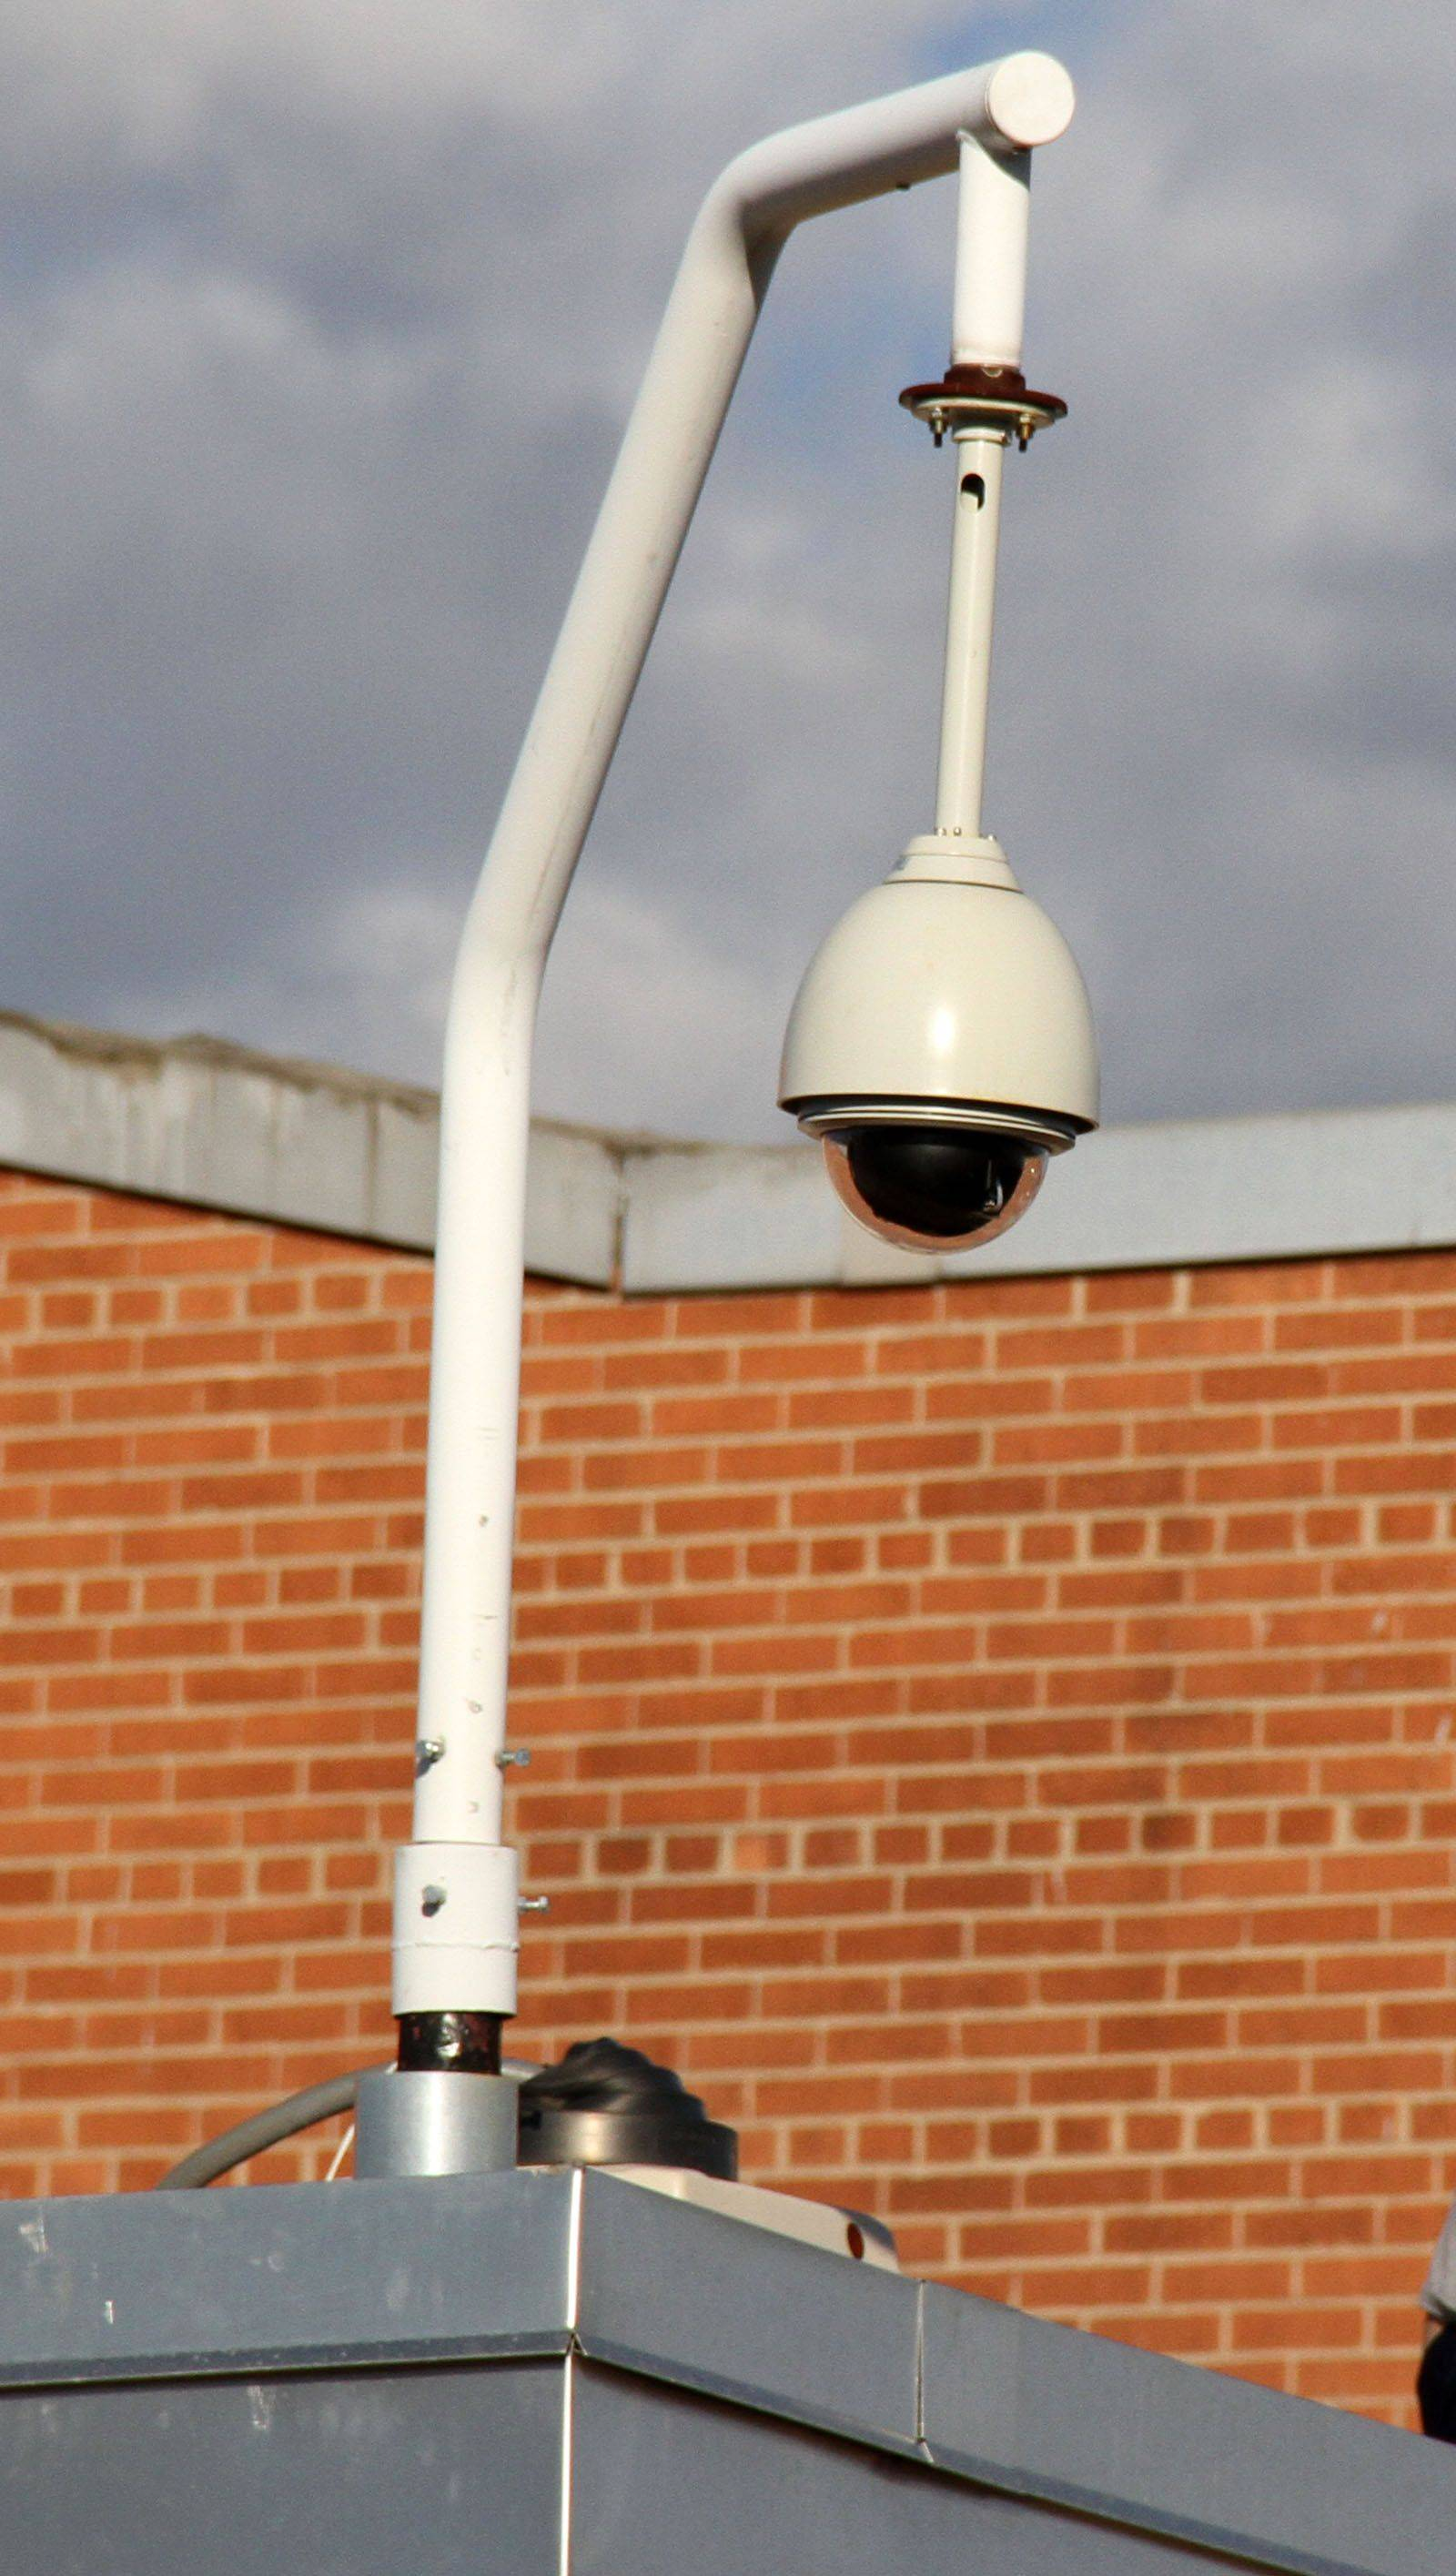 Live video from security cameras like this one on the roof of Prospect High School could be accessed by police officers using smartphones as part of a $1 million upgrade planned by Northwest Suburban High School District 214. The district hopes to fund half the project with a federal grant.